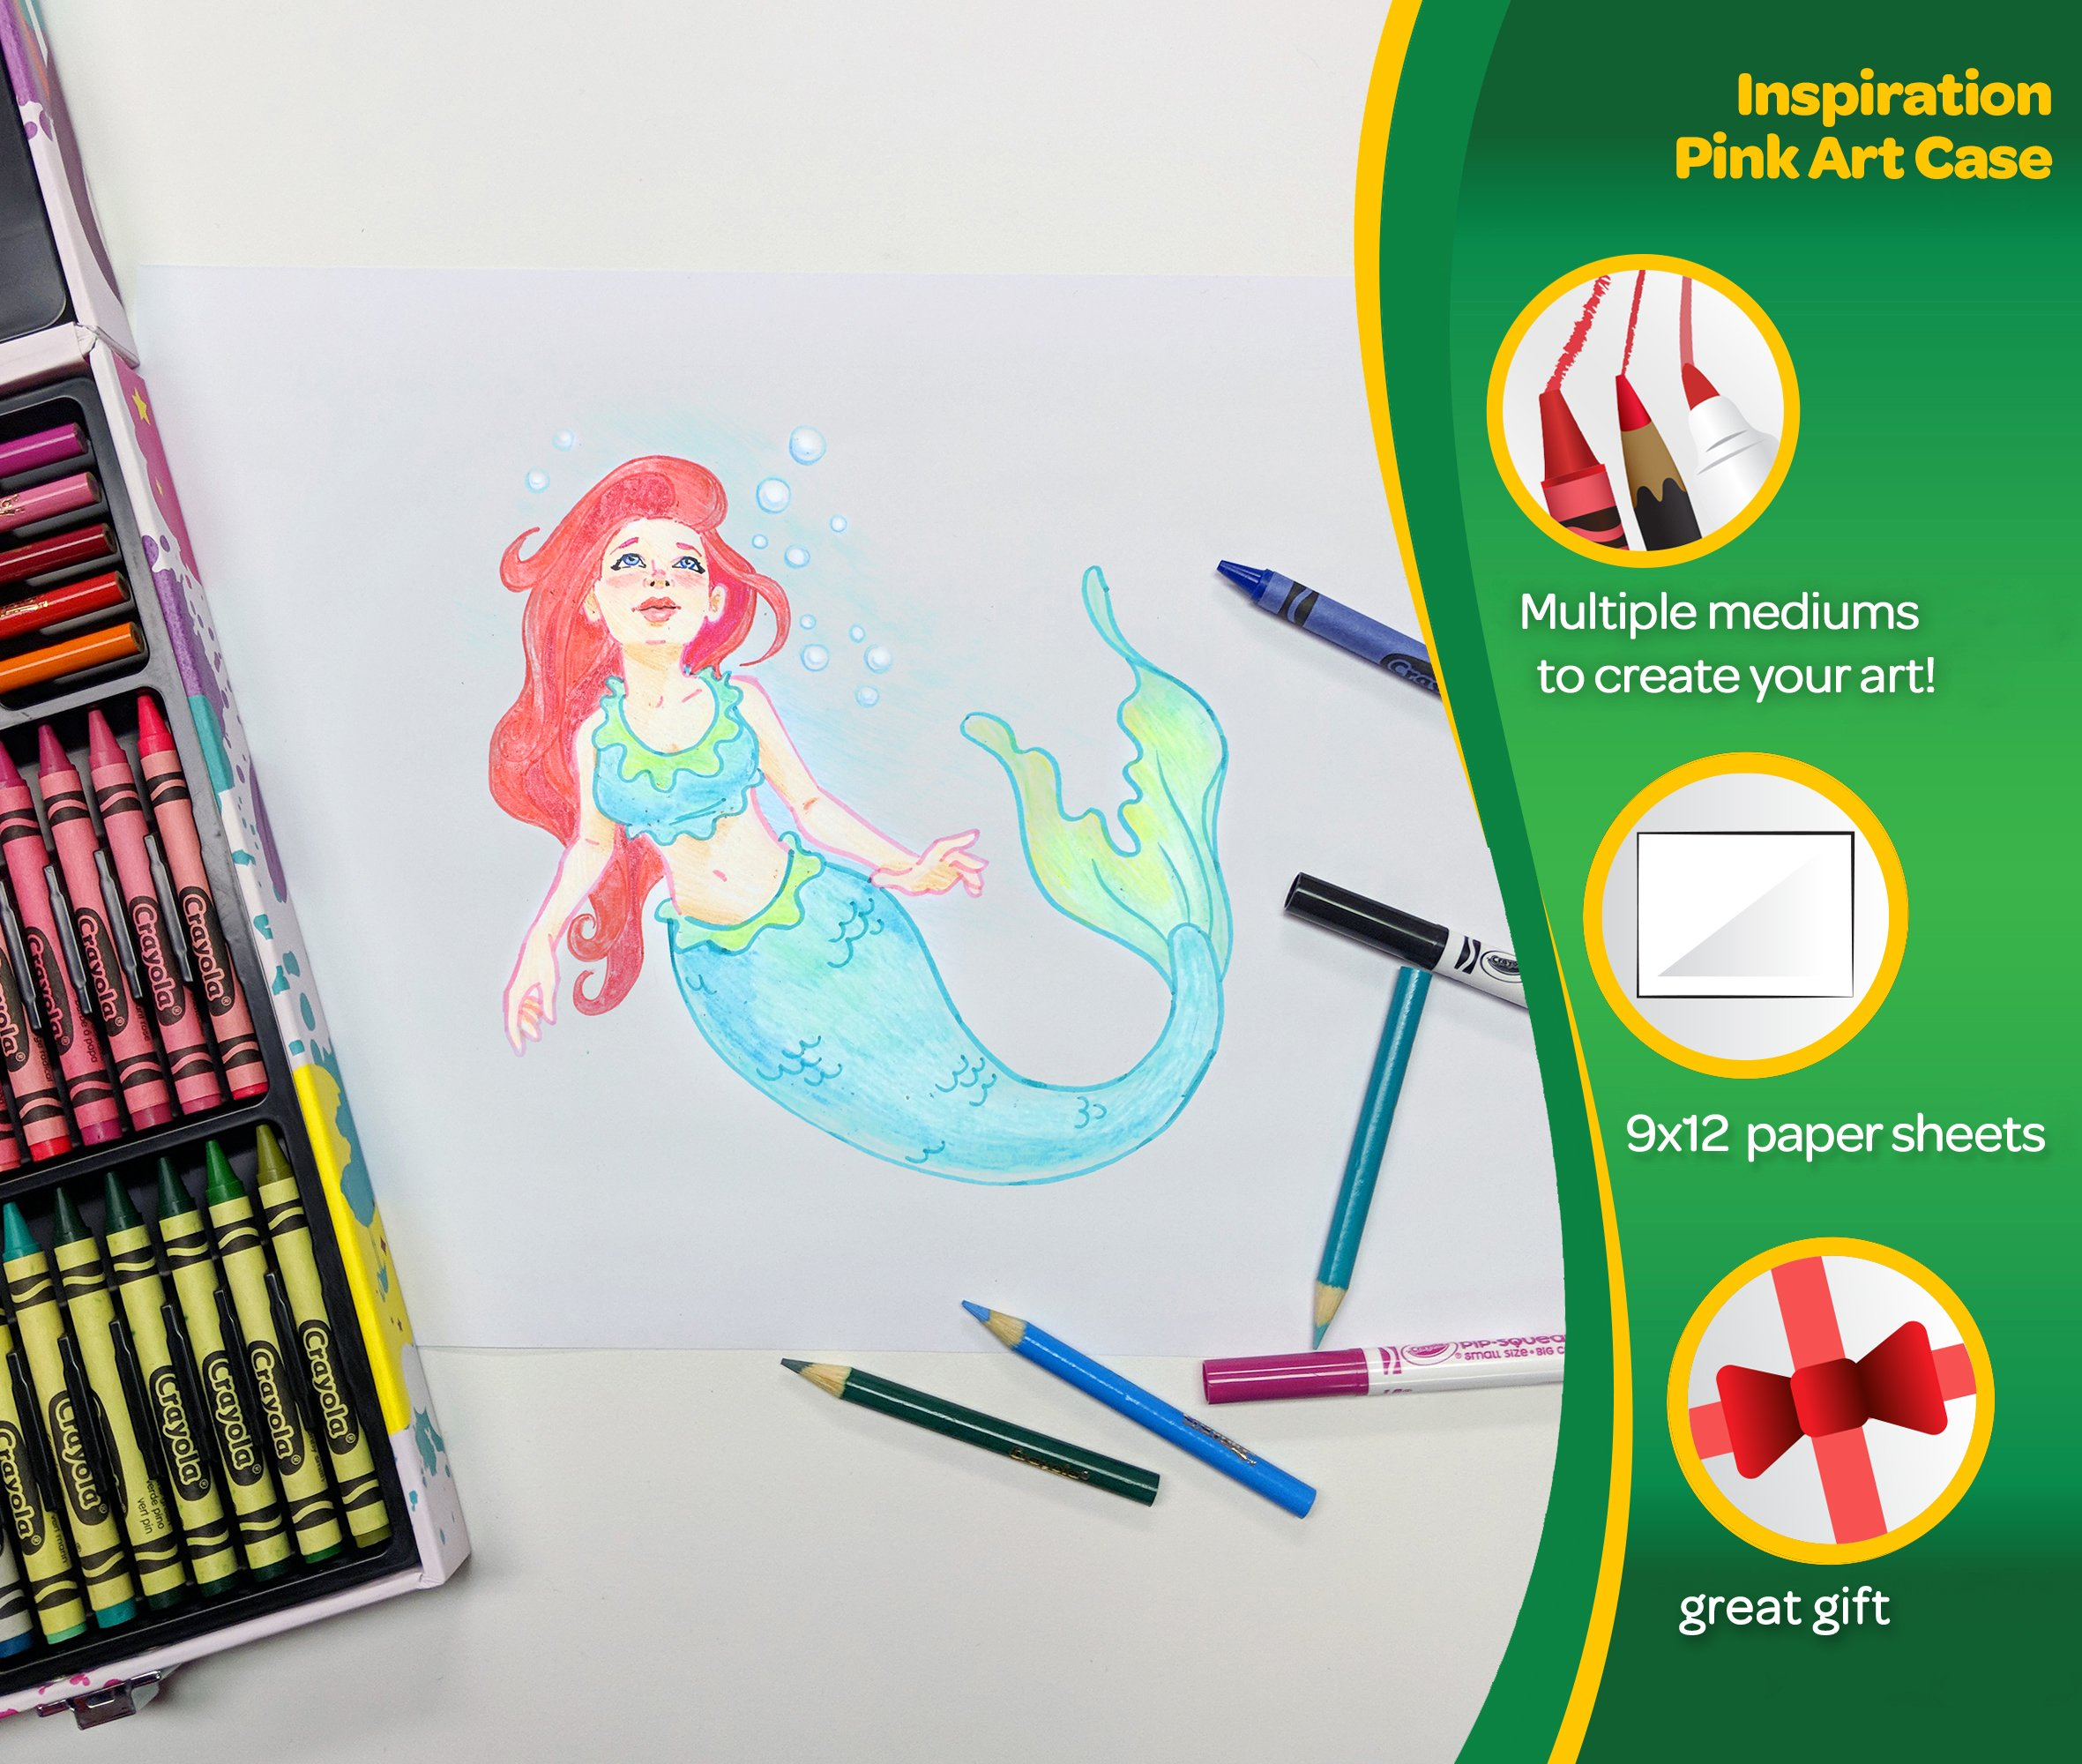 Crayola Inspiration Art Case in Pink, 140 Art & Coloring Supplies, Gift for Girls by Crayola (Image #3)